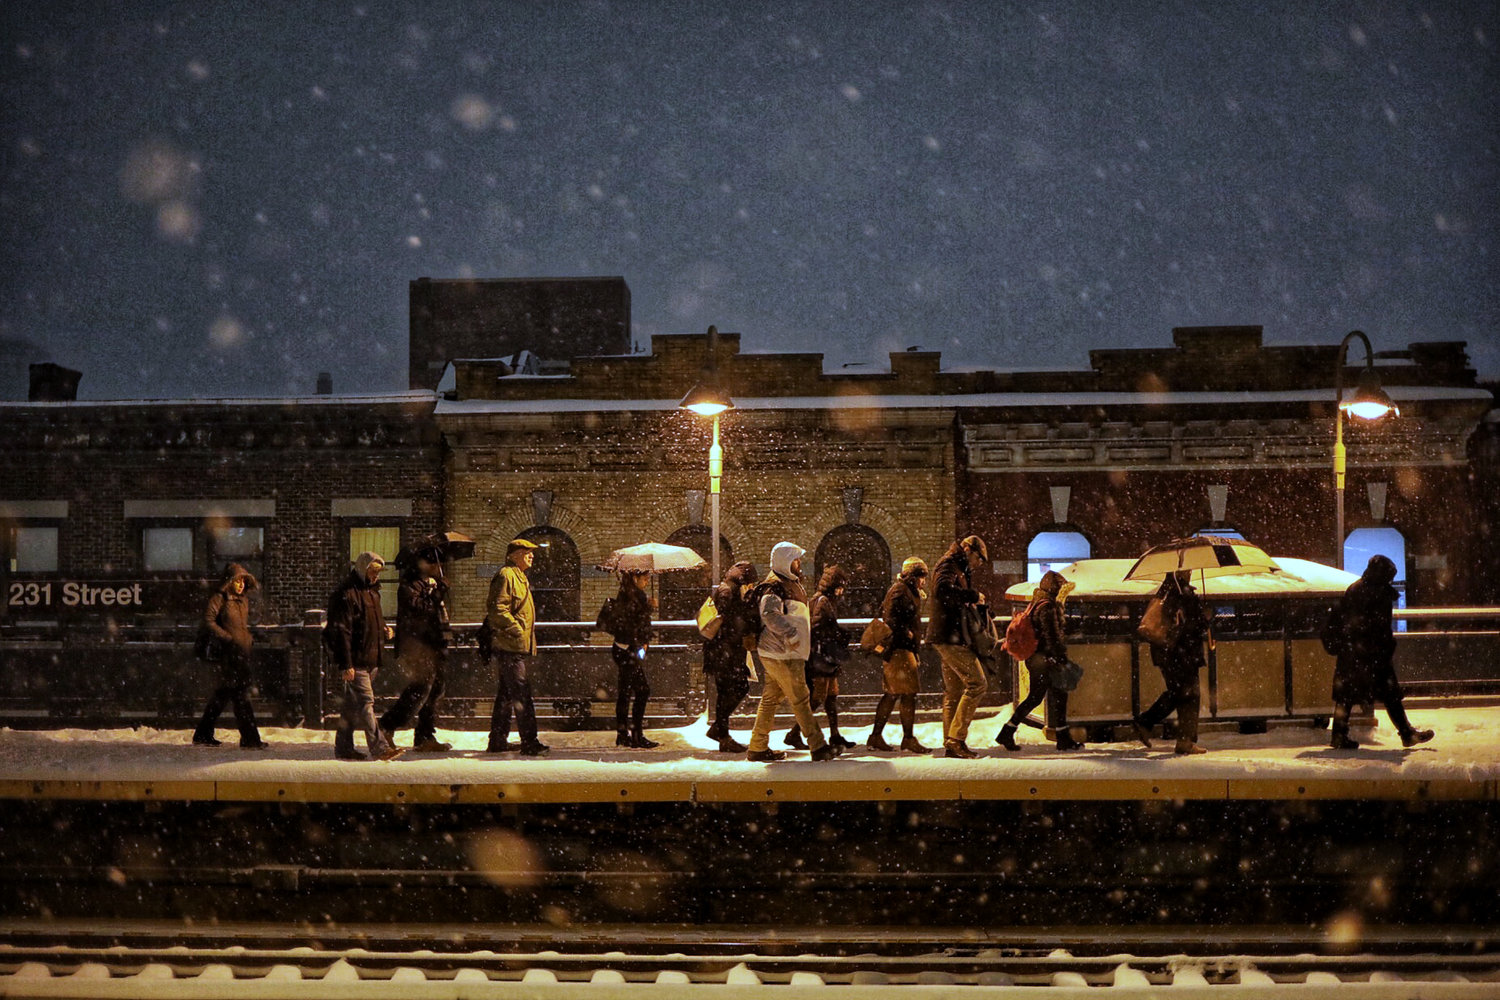 Commuters trudge through the snow toward the stairs after disembarking from an uptown 1 train at the 231st Street stop.